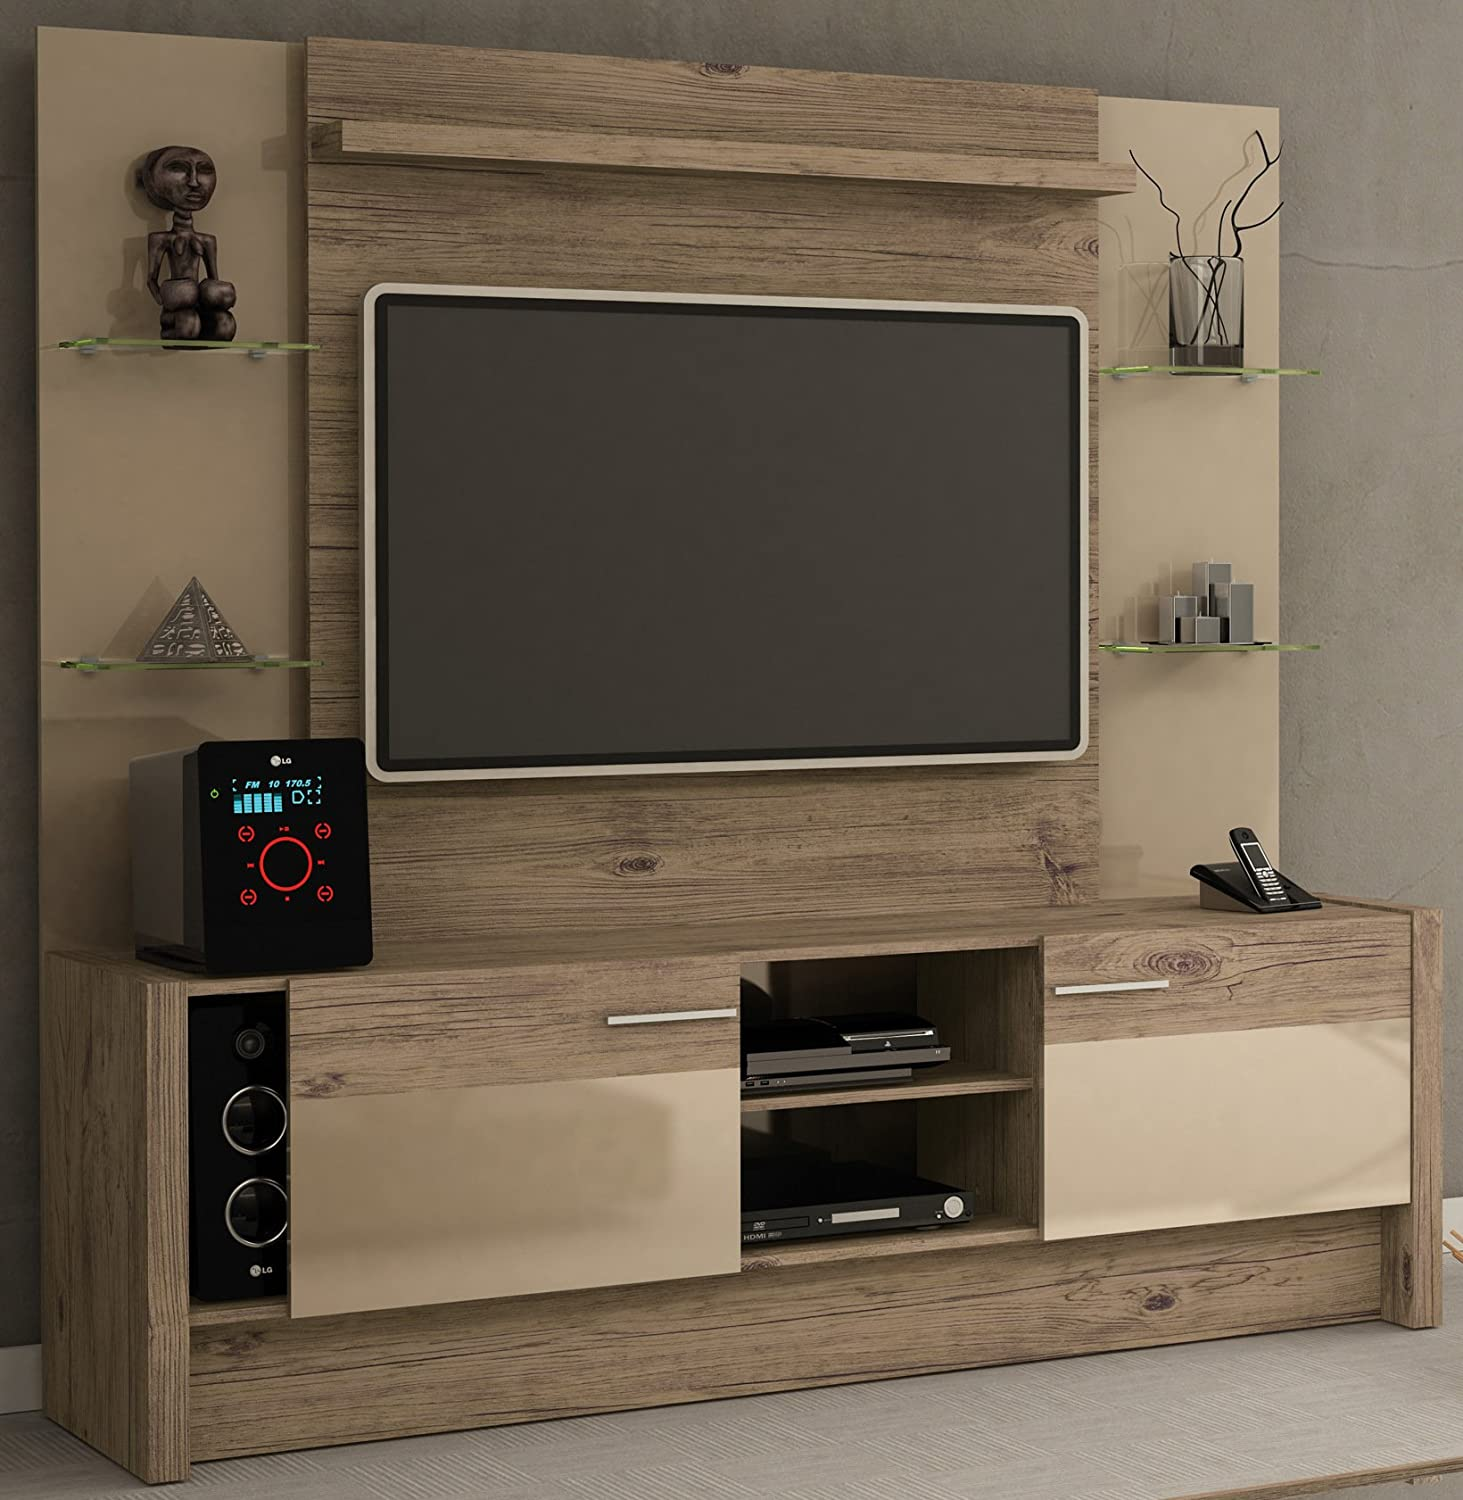 Entertainment center contemporary entertainment centers and tv stands - Amazon Com Manhattan Comfort Morning Side Entertainment